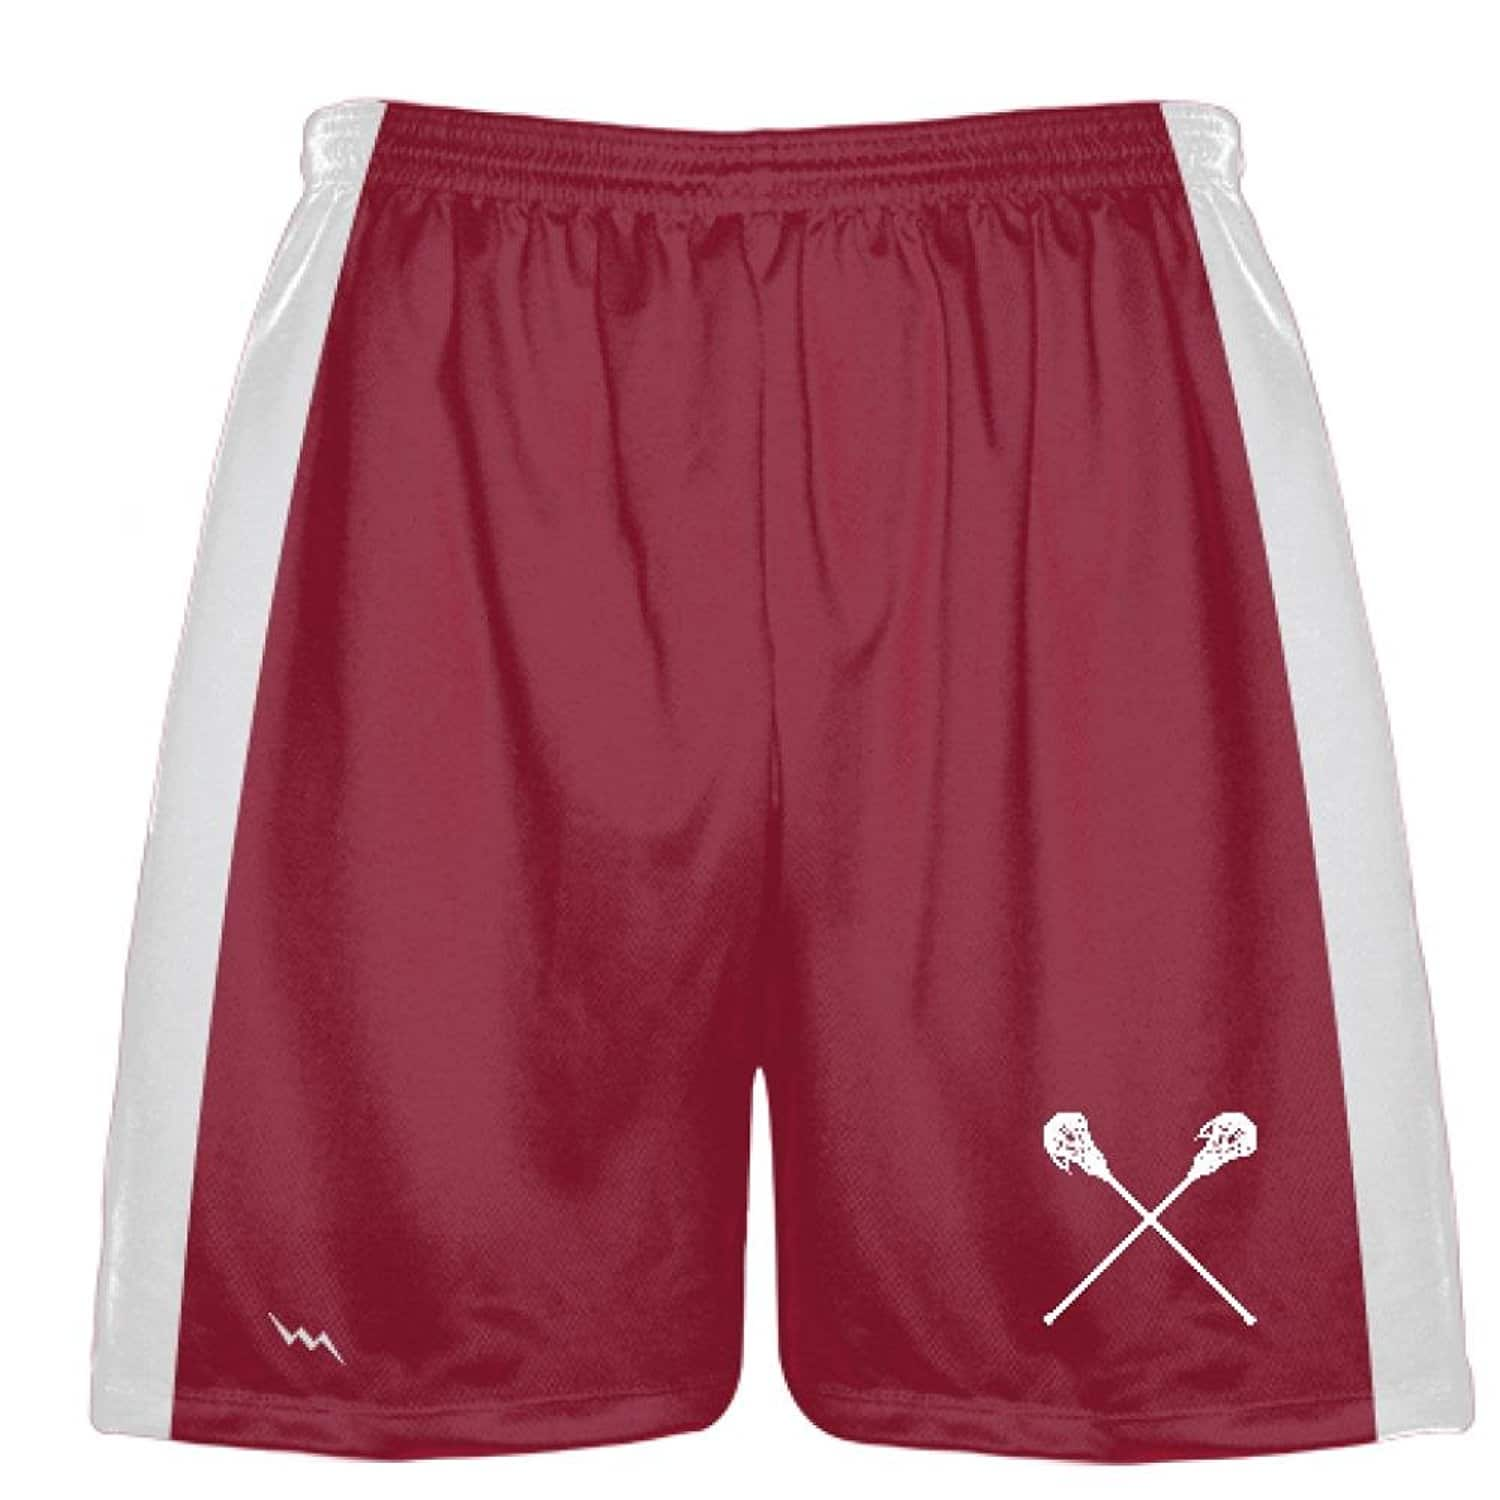 LightningWear-Cardinal-Red-Lacrosse-Short-Sublimated-Shorts-For-Lacrosse-Boys-Athletic-Shorts-B078NGC11Y